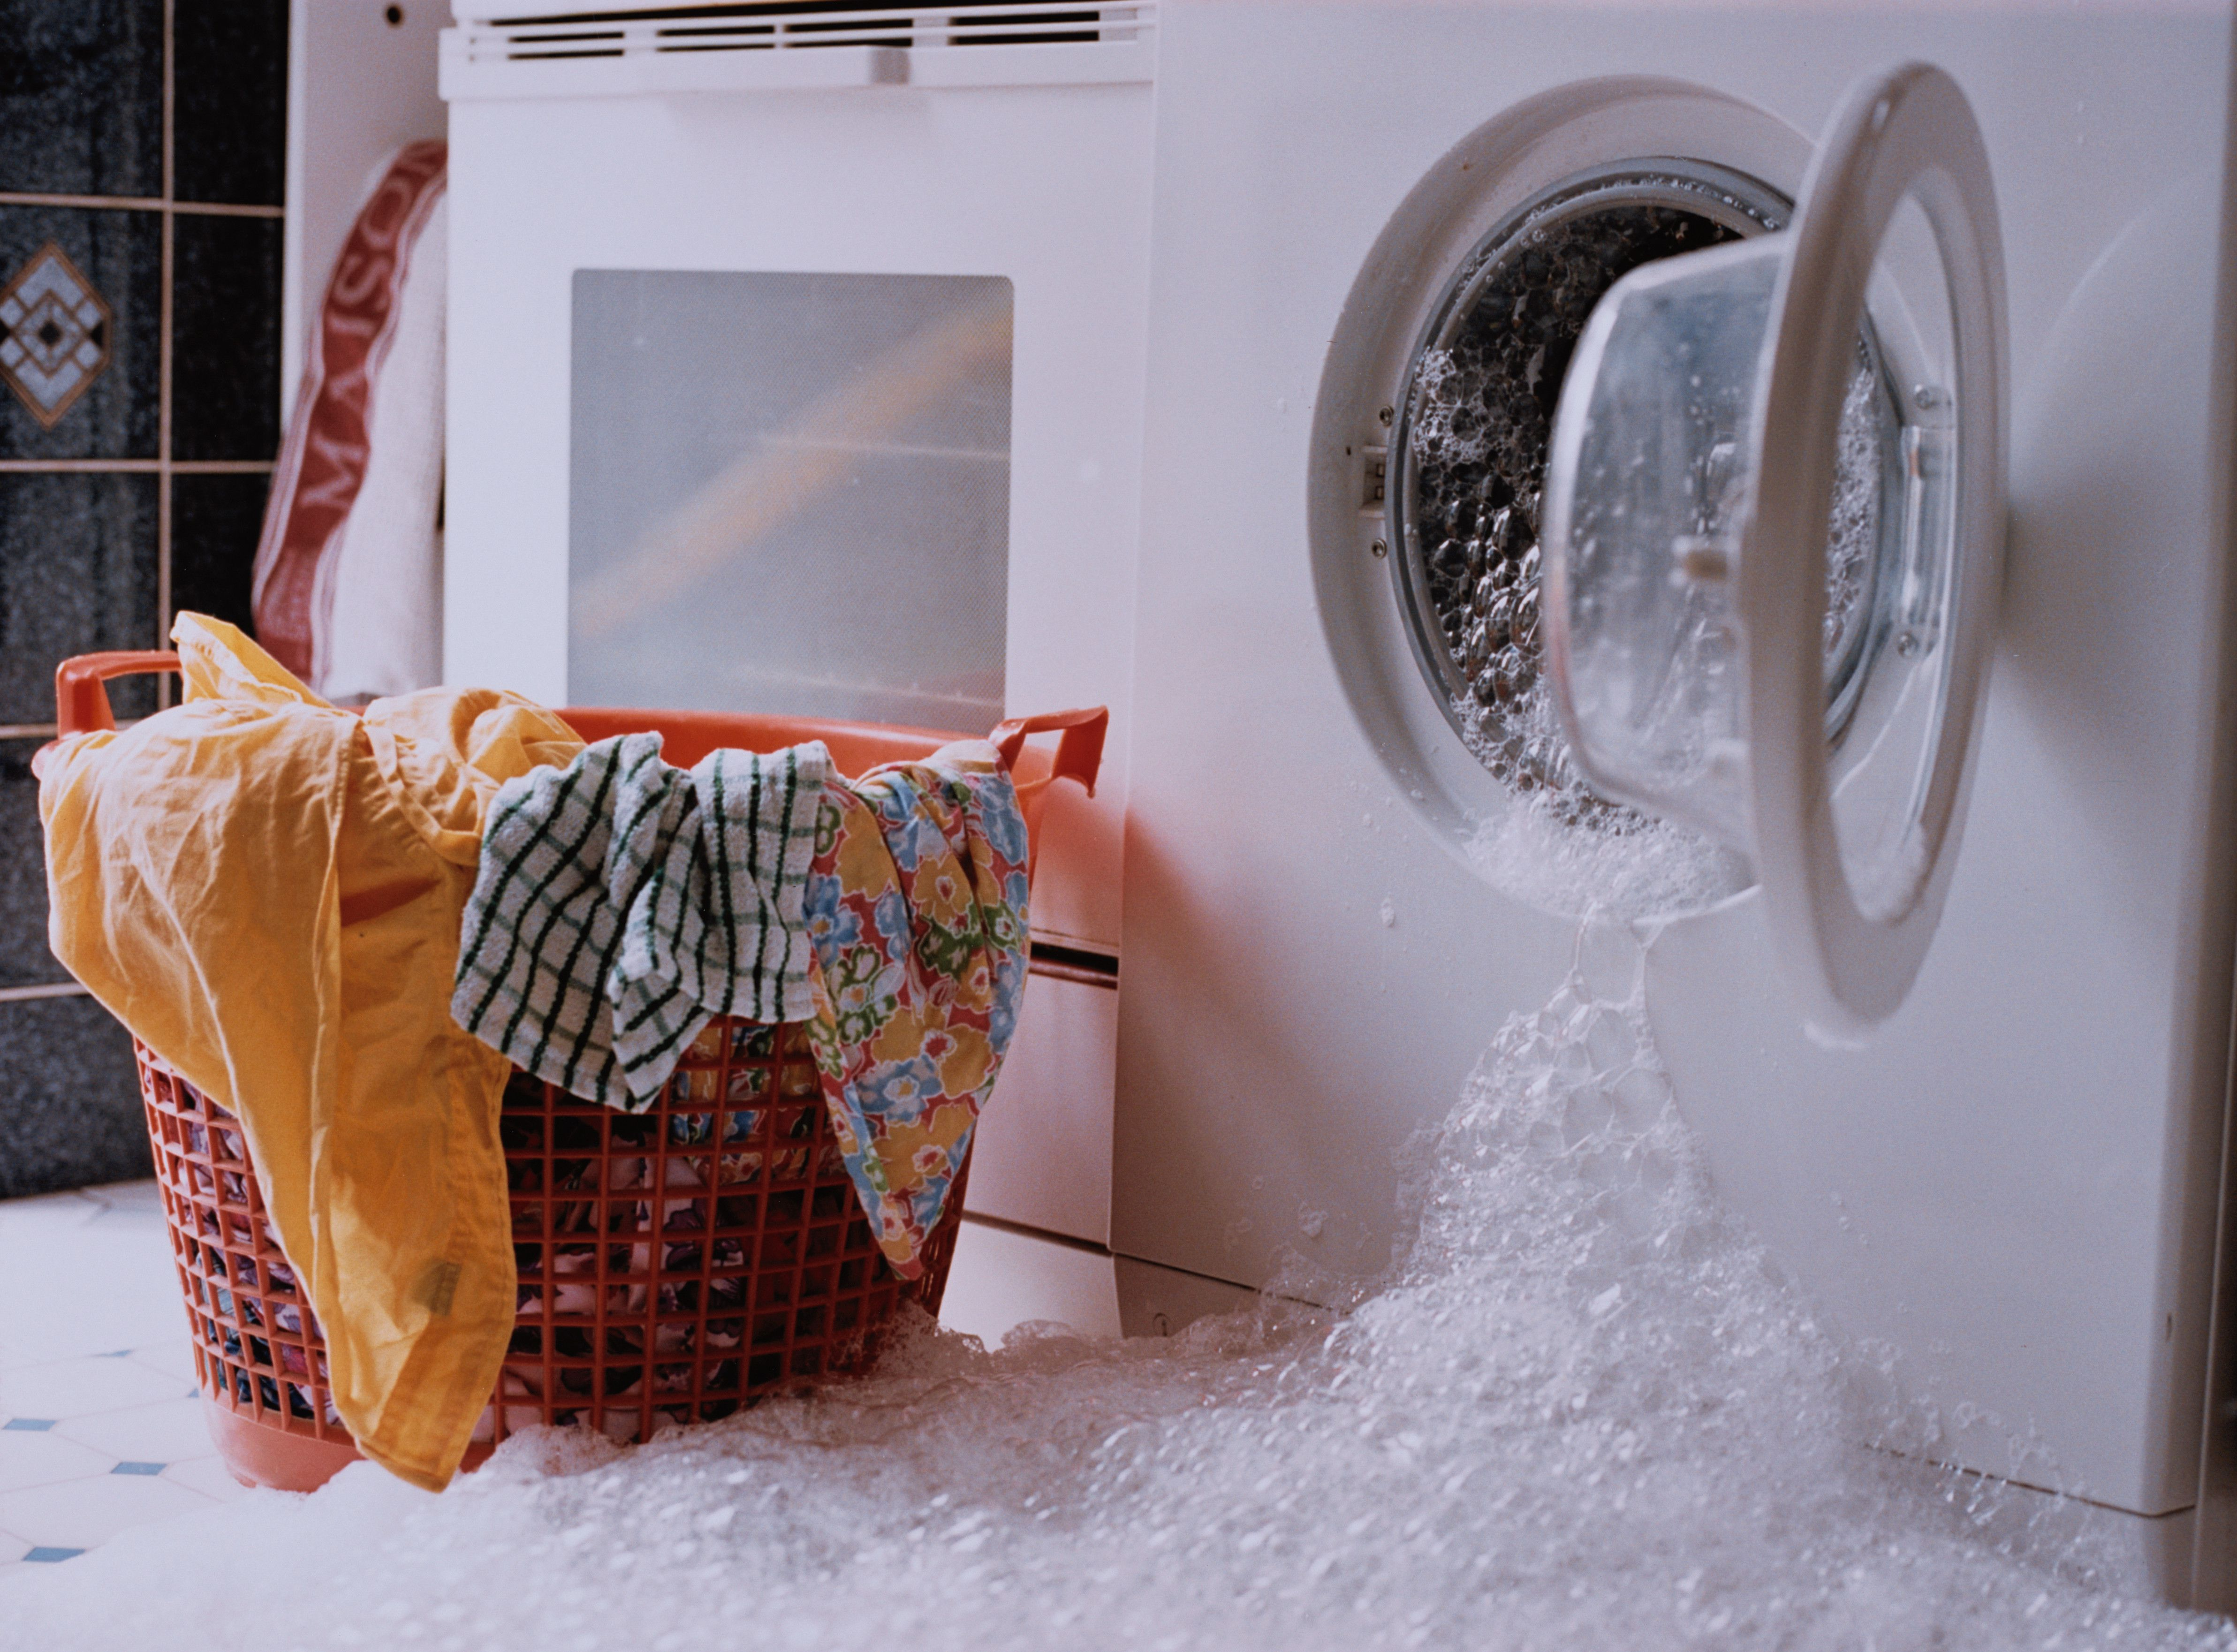 how to diagnose and fix washing machine drain problems